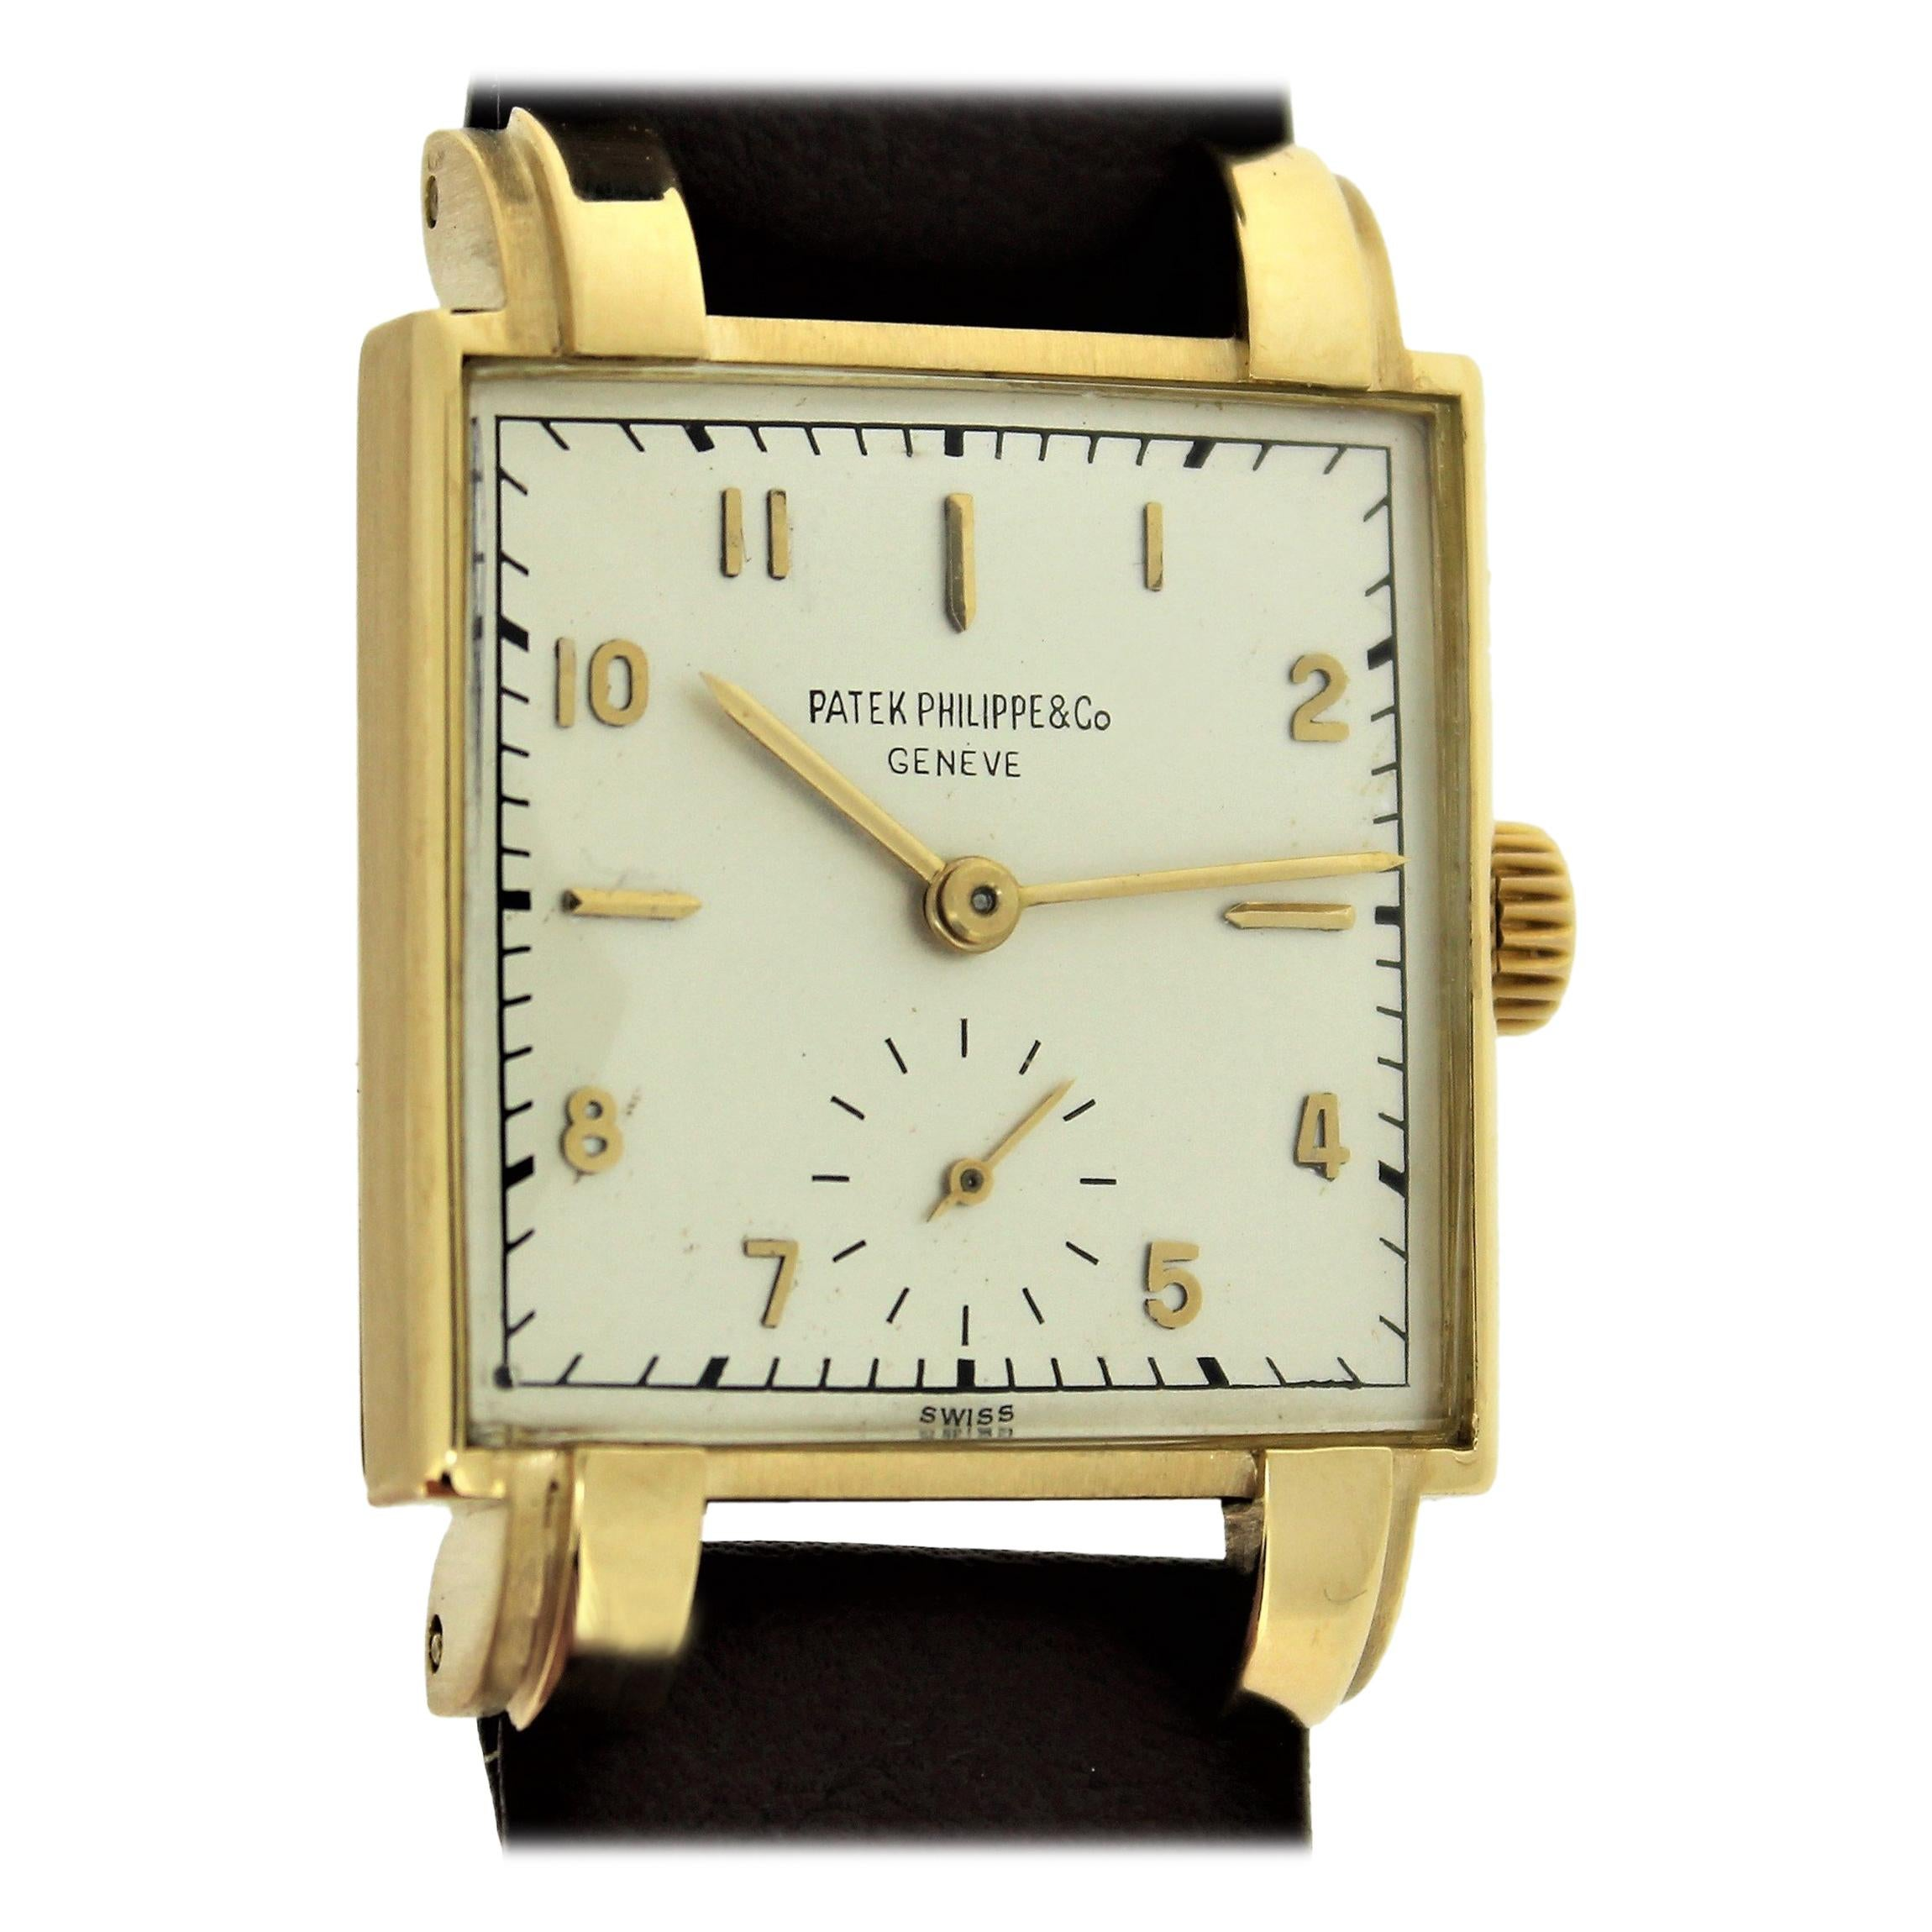 e3f3e8abd91 Patek Philippe Watches and Jewelry - For Sale at 1stdibs